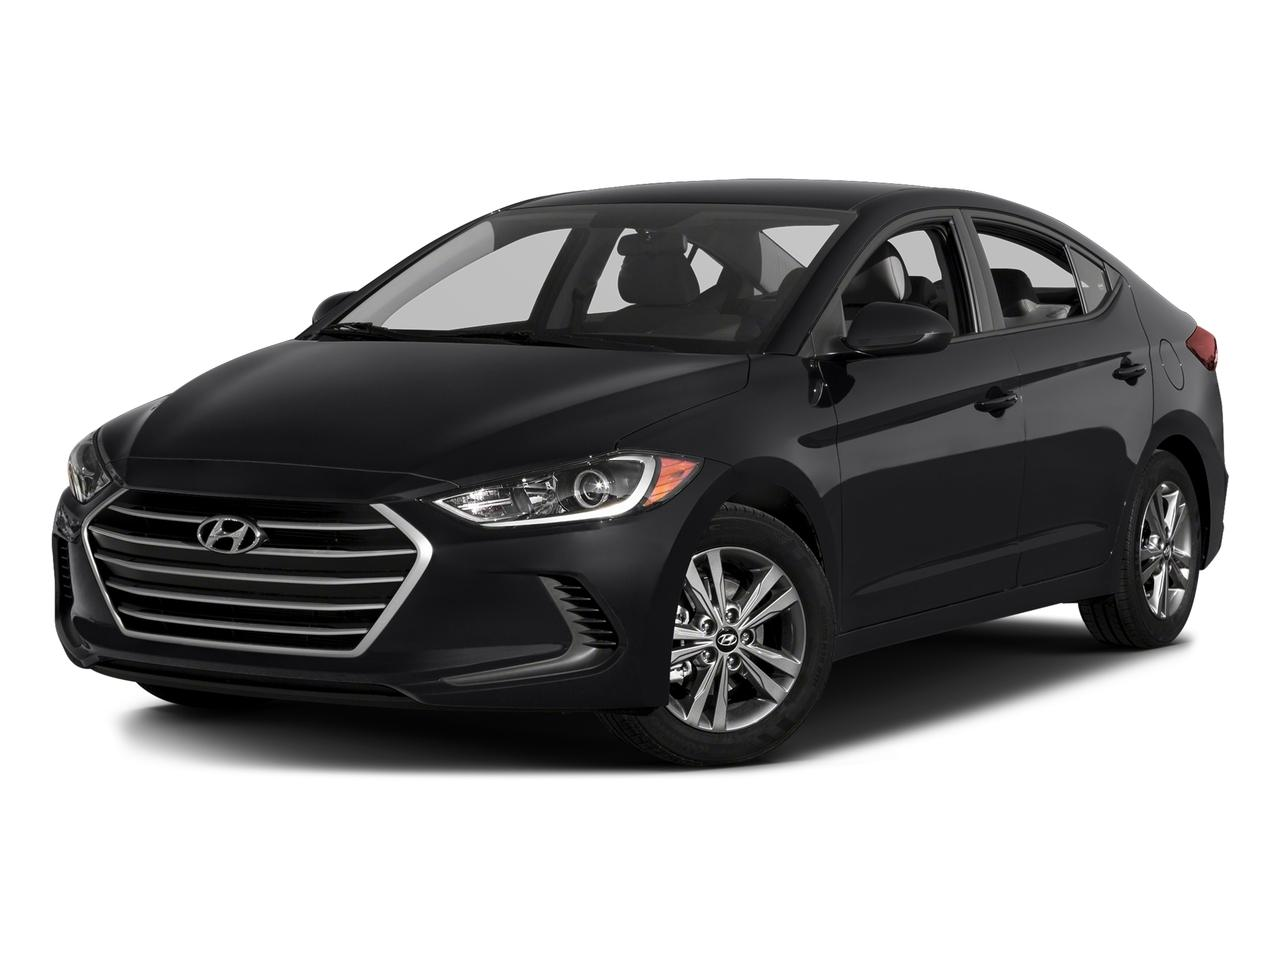 2018 Hyundai Elantra Vehicle Photo in Doylestown, PA 18902